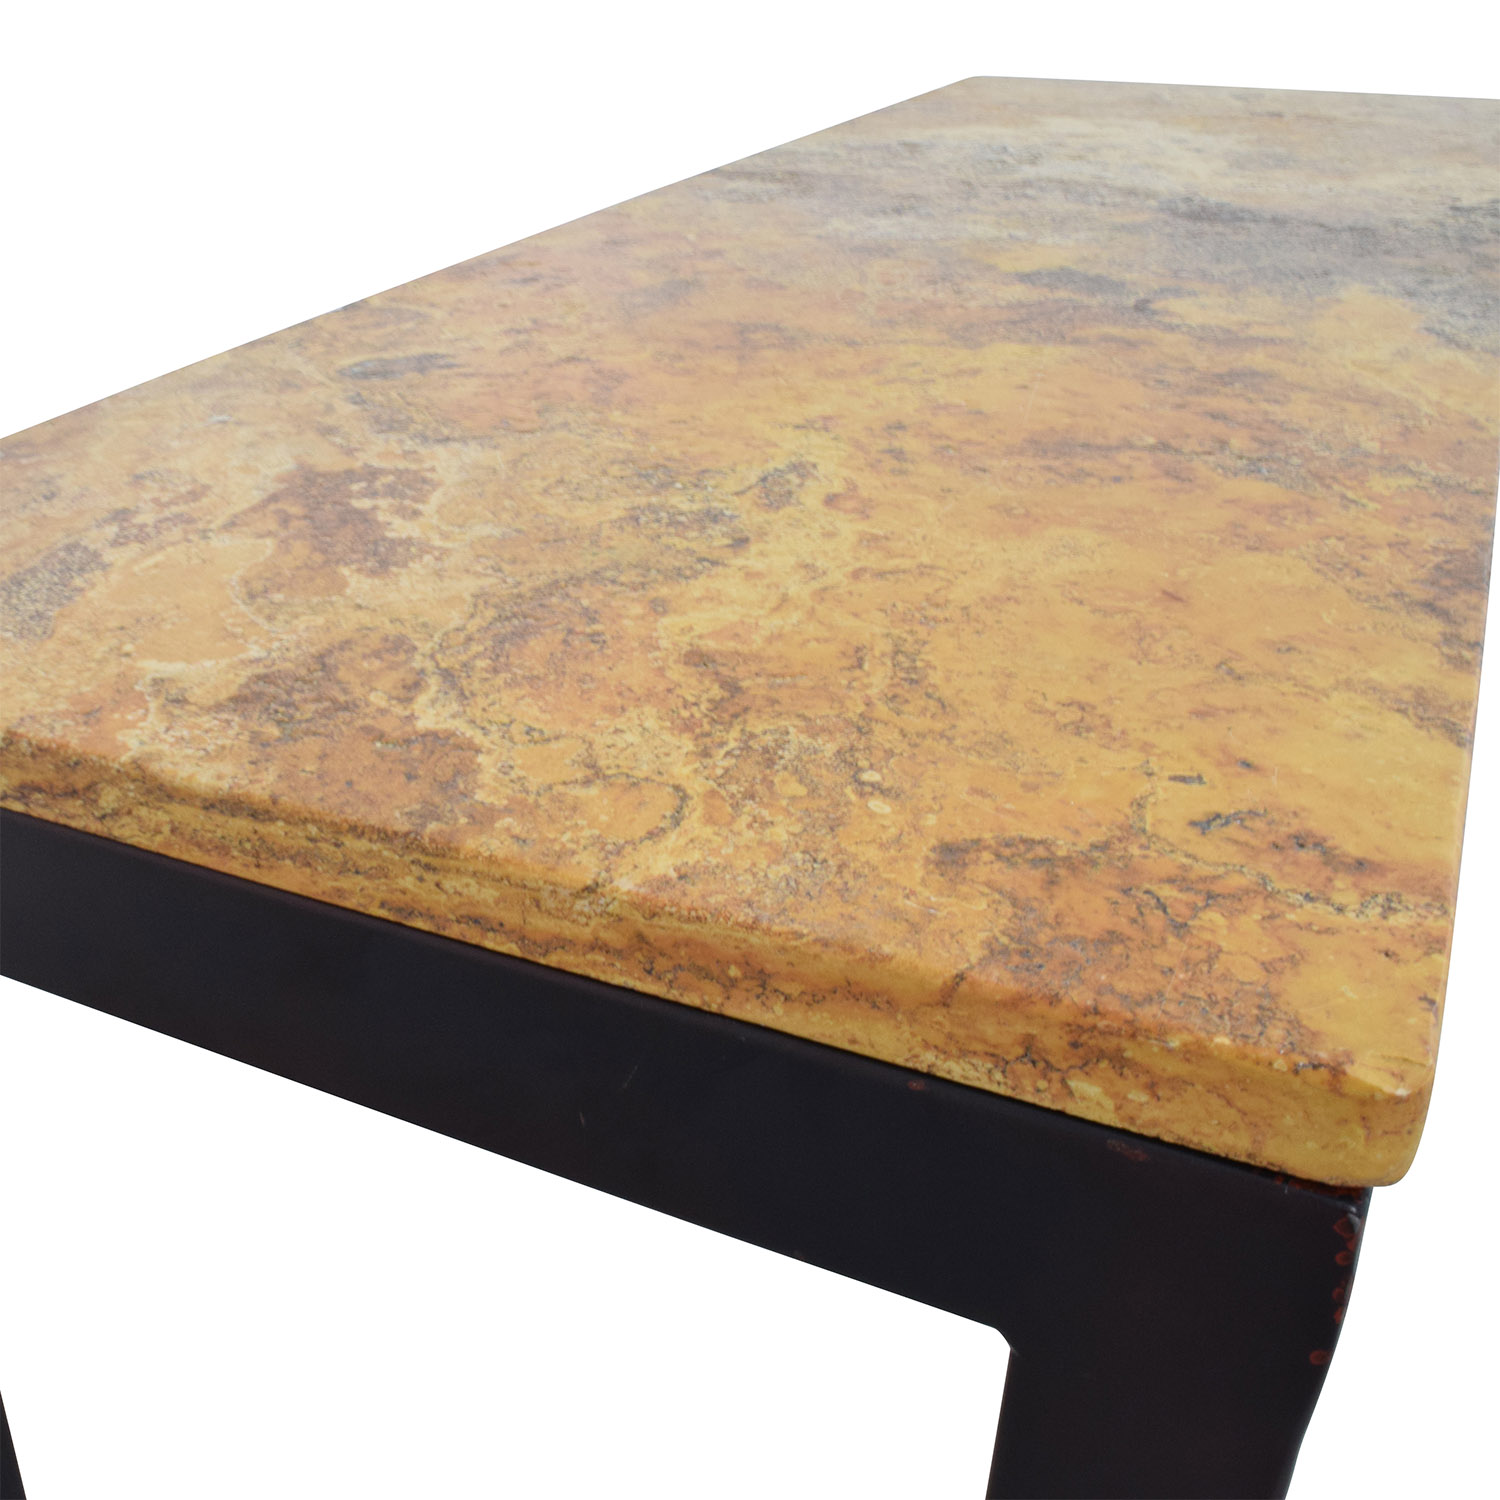 ... Marble Table In Orange Brown Yellow Top Used; Buy ...